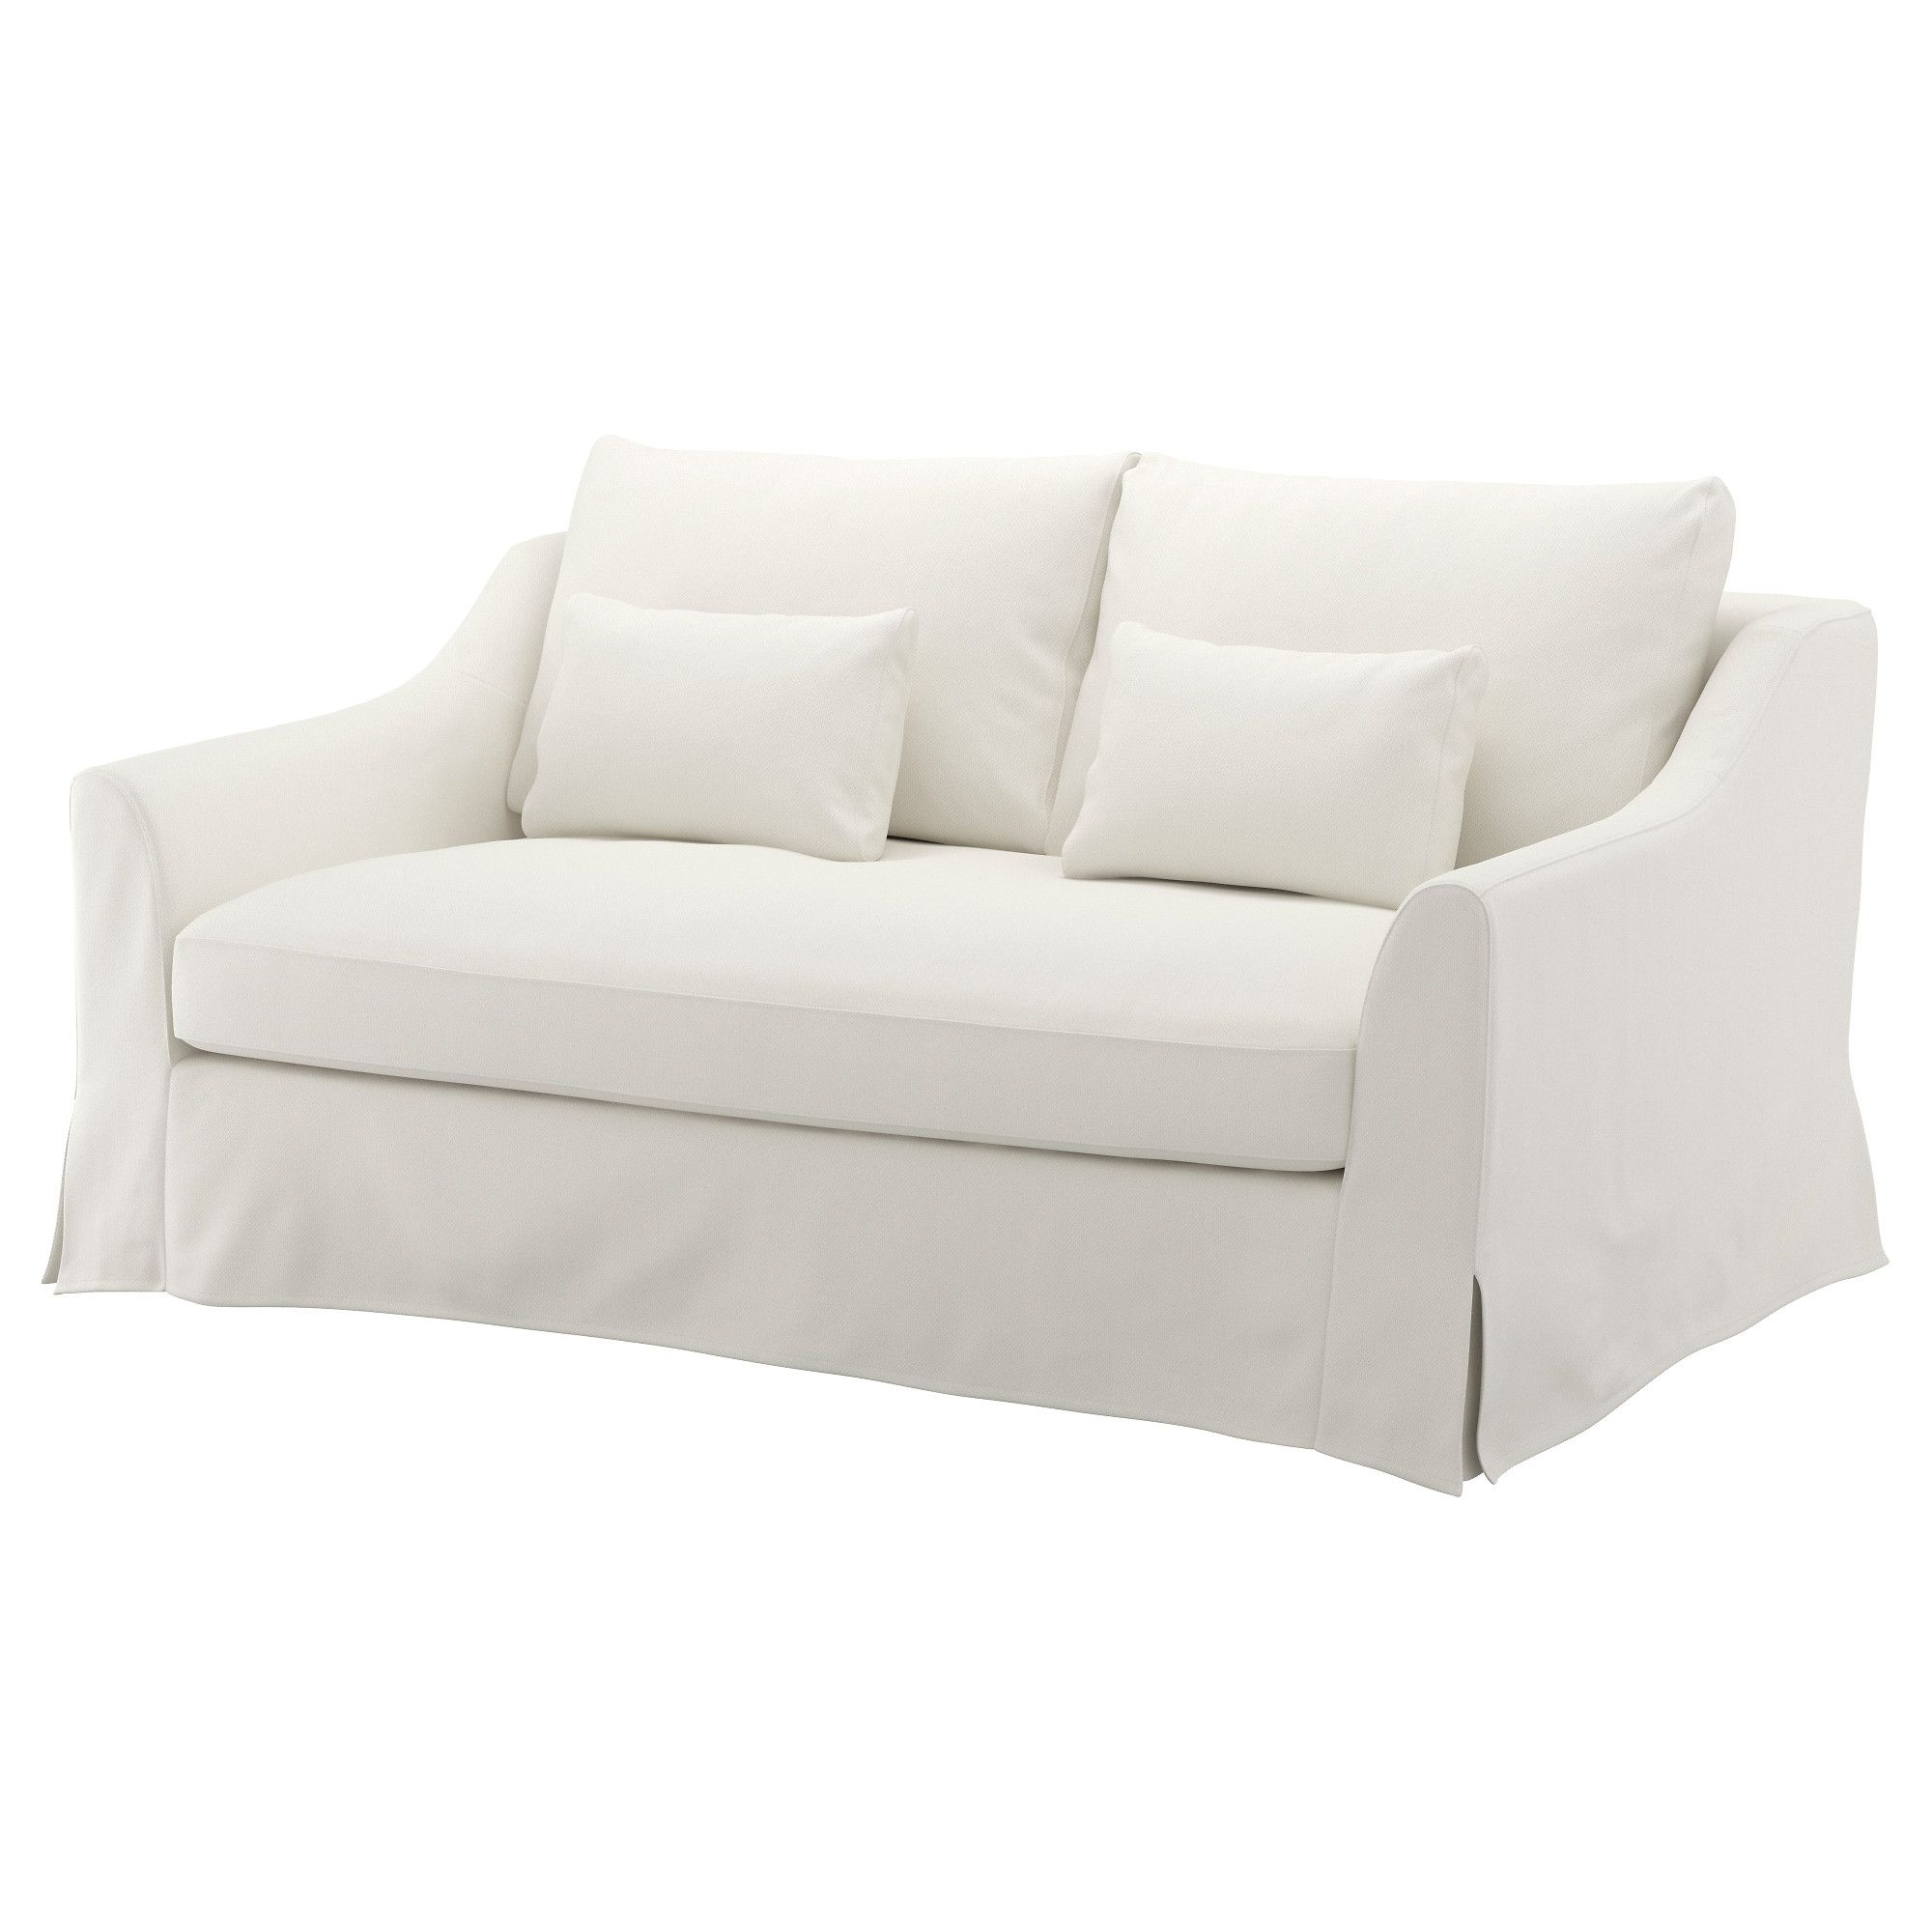 Farlov Loveseat Flodafors White Love Seat Ikea Loveseat White Loveseat